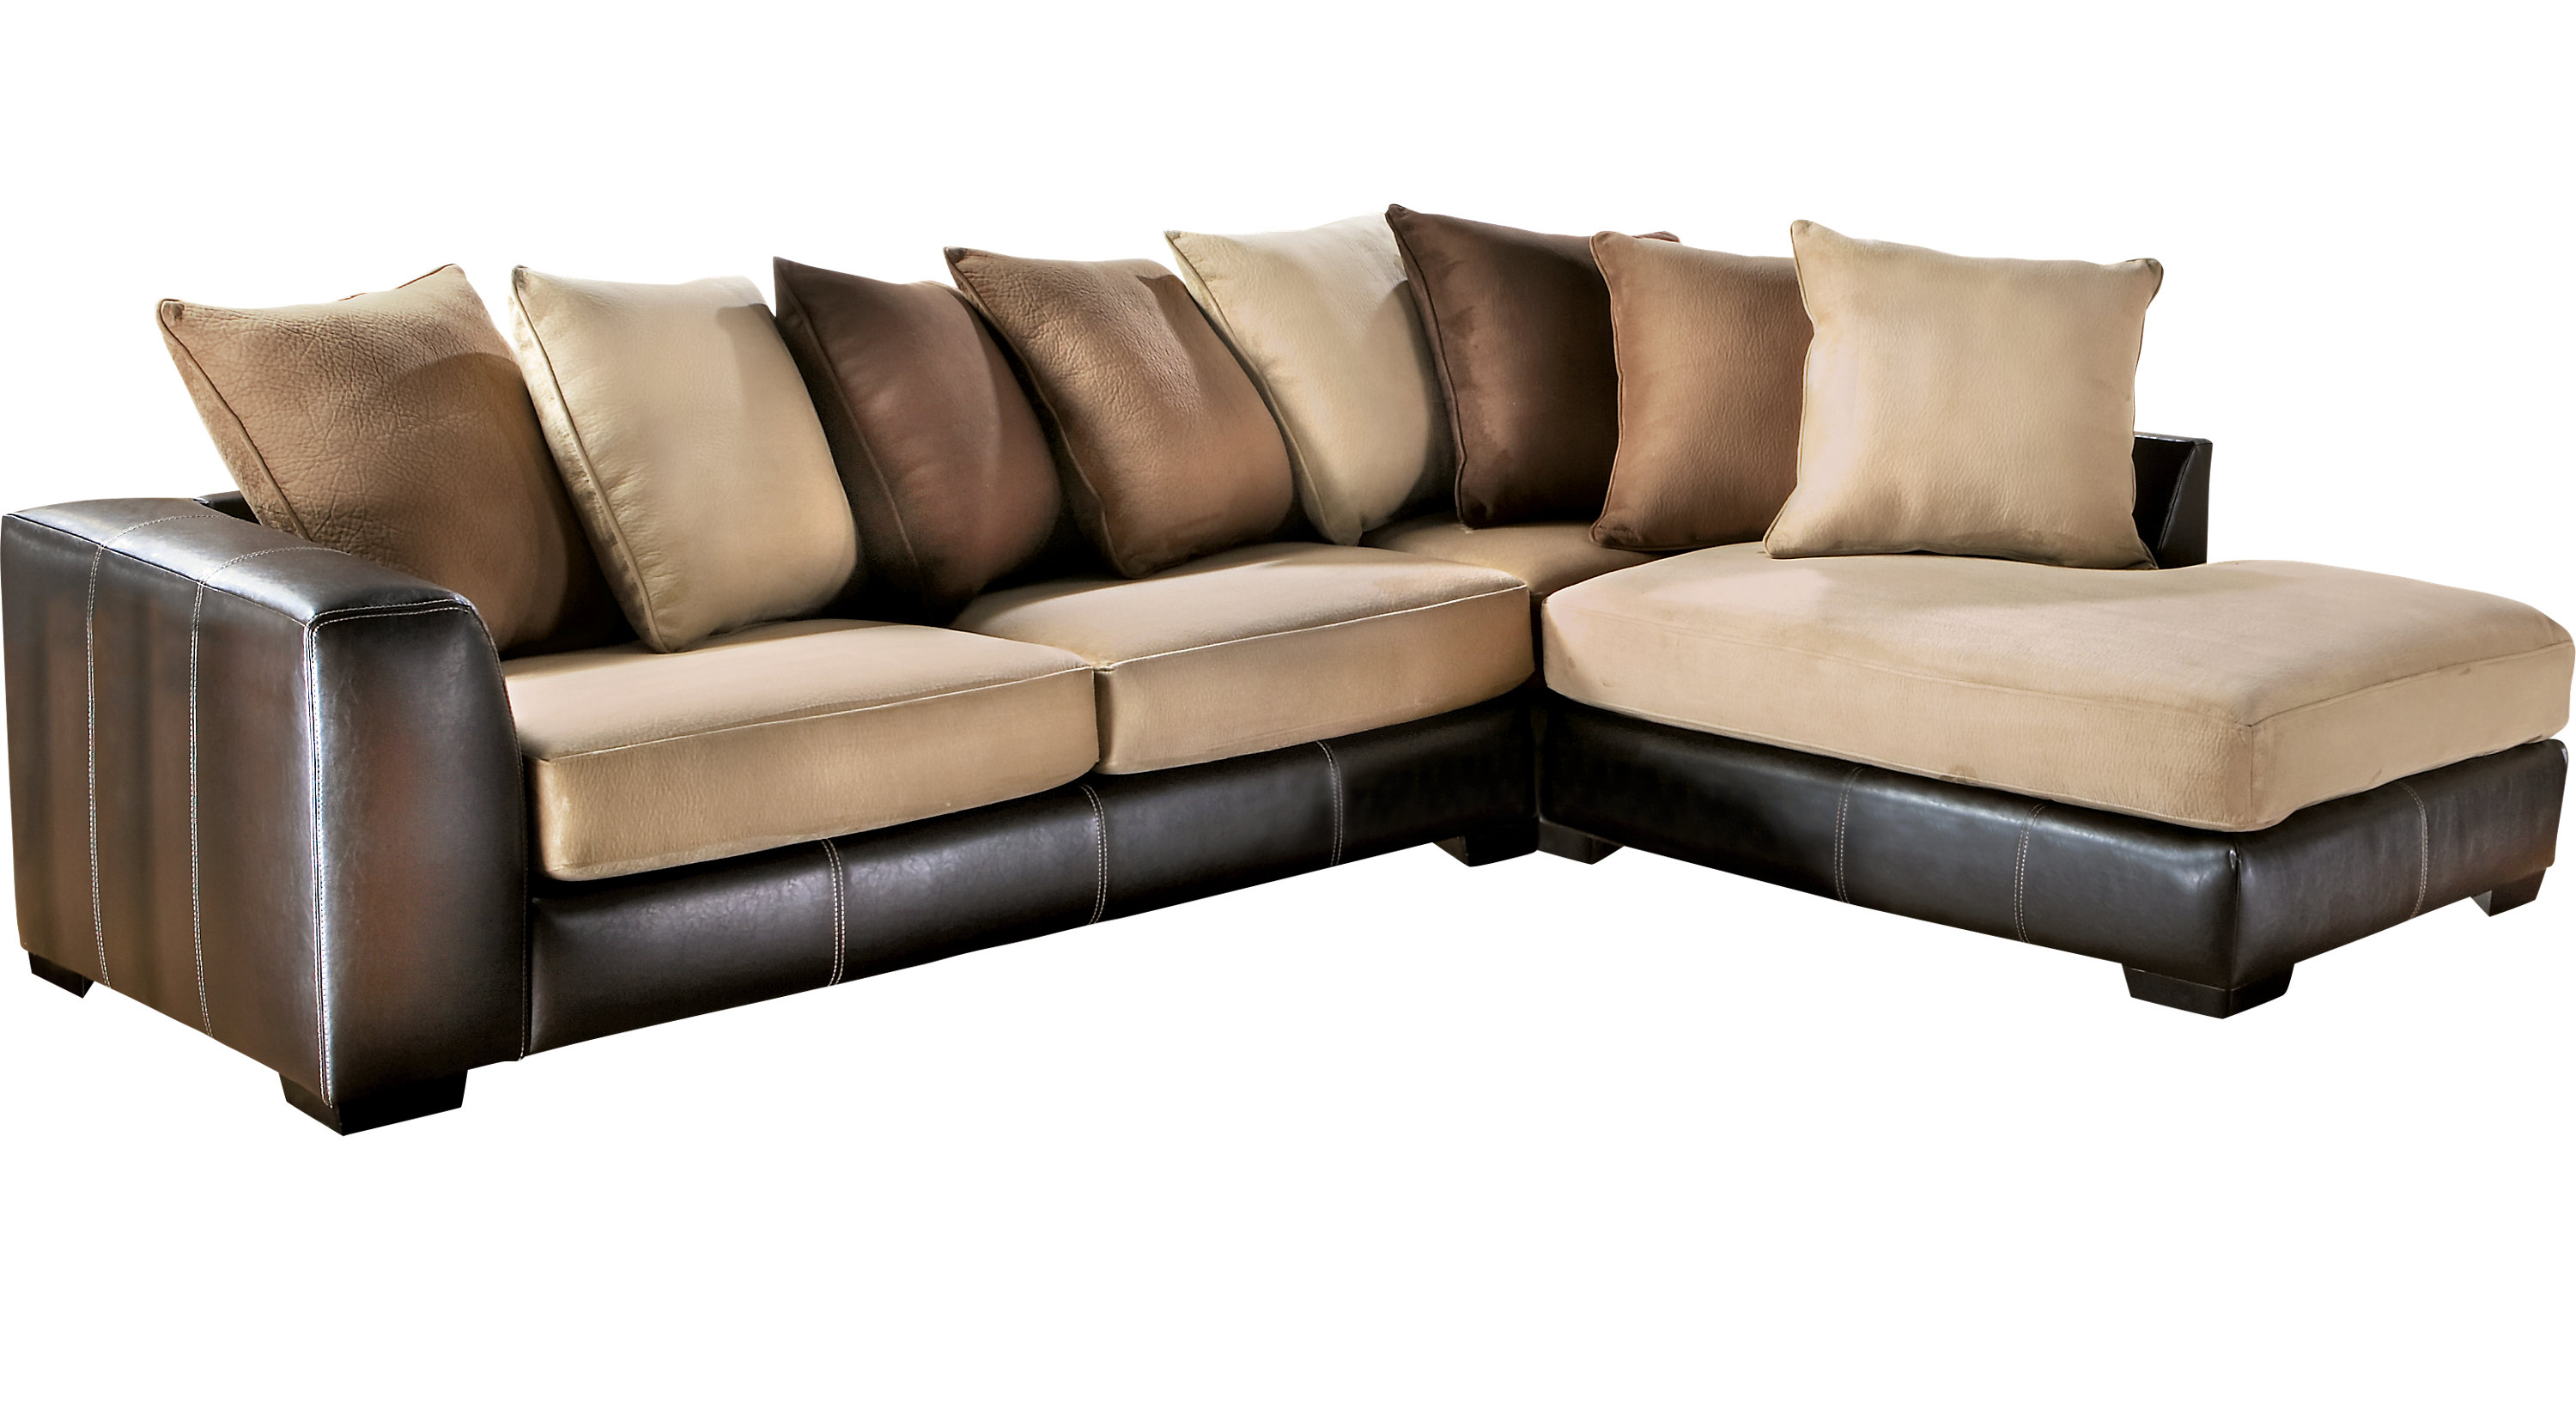 Gregory beige 2 pc sectional contemporary microfiber